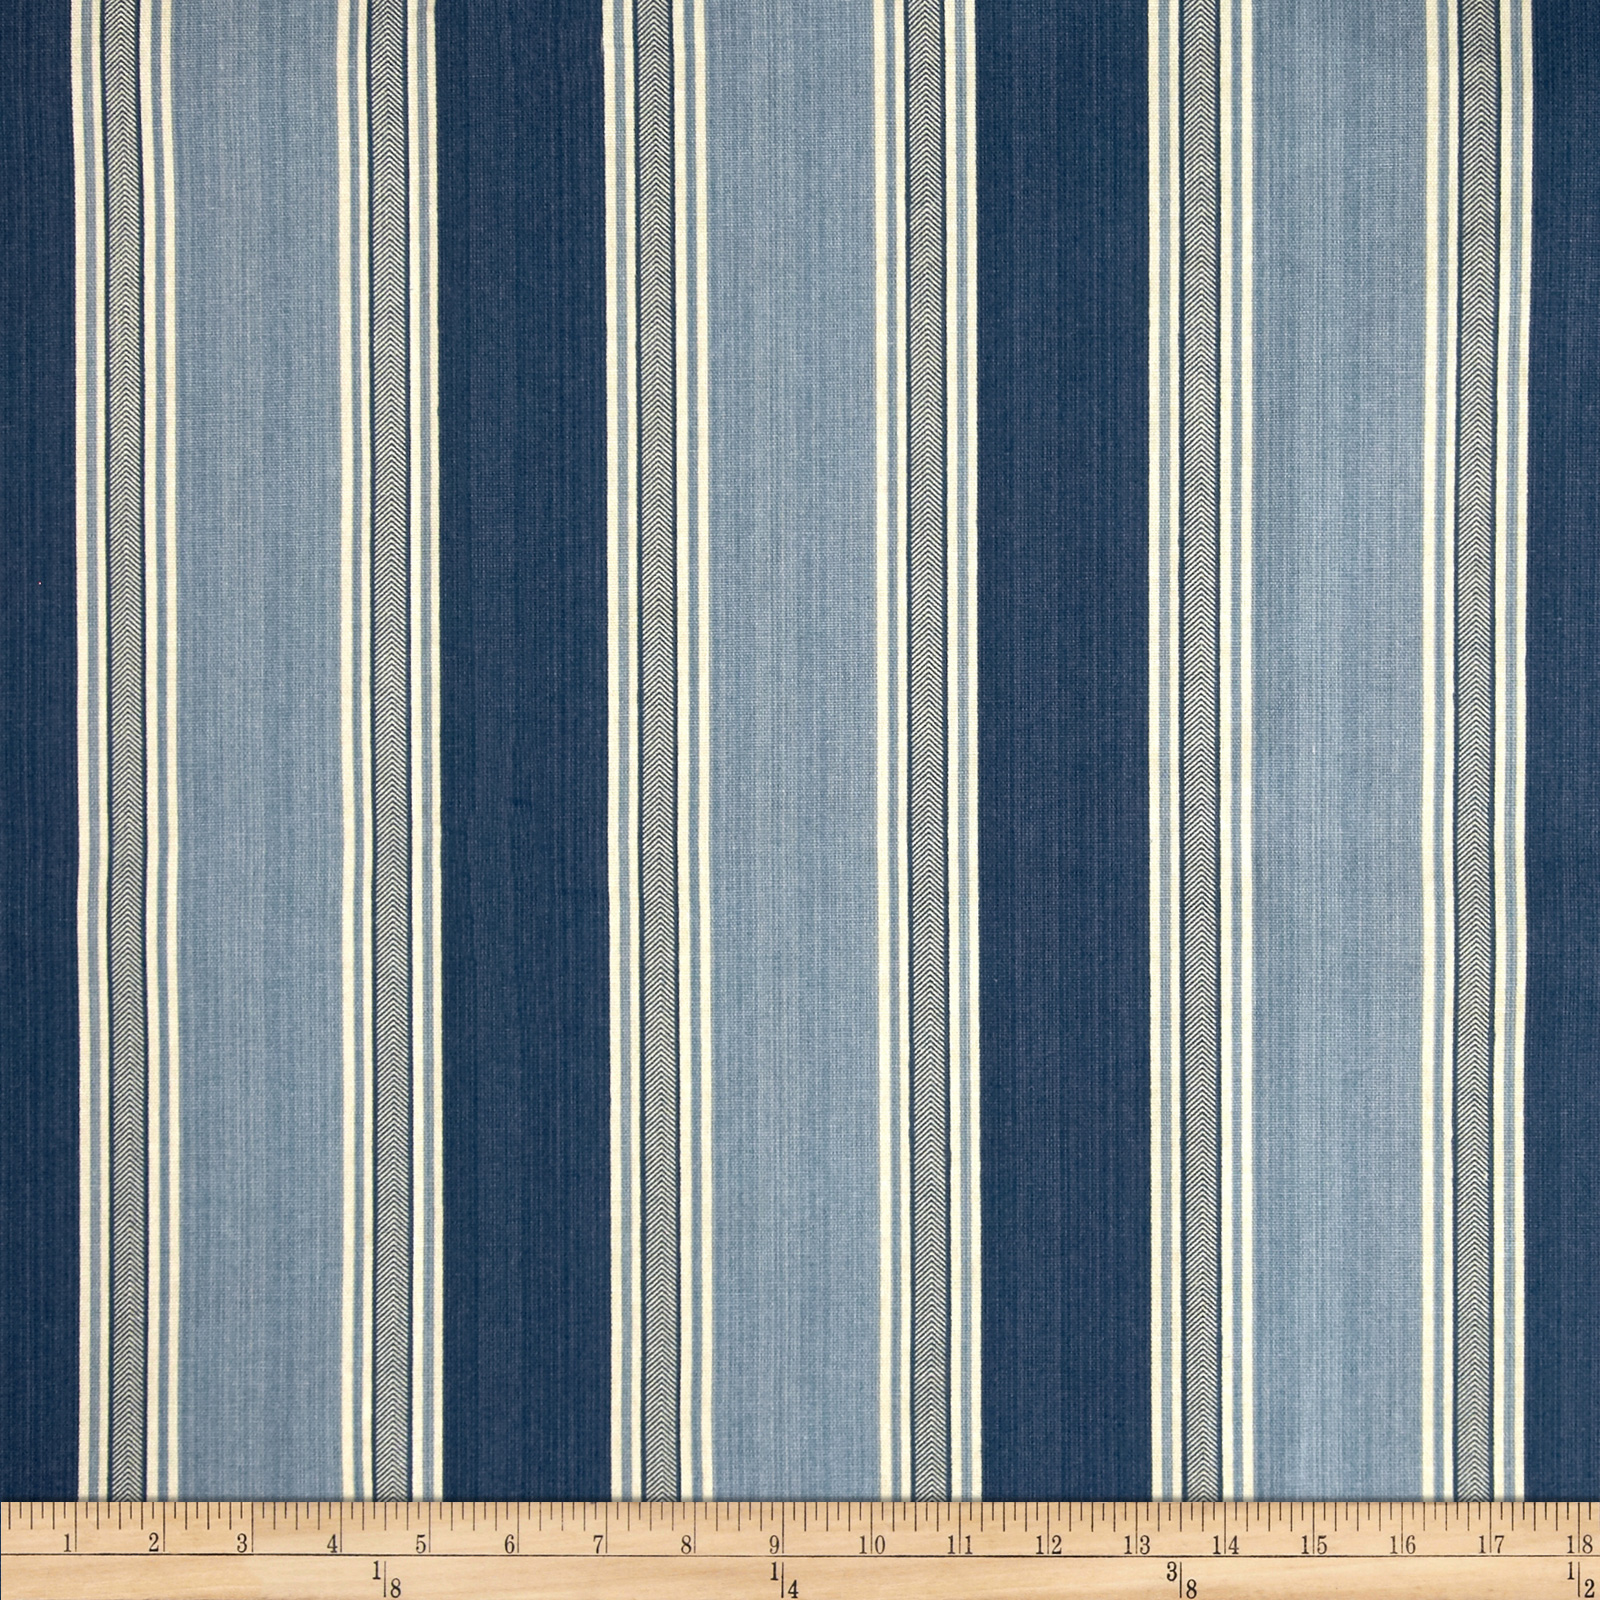 Waverly Stripe Fabric Discount Designer Fabric Fabric Com